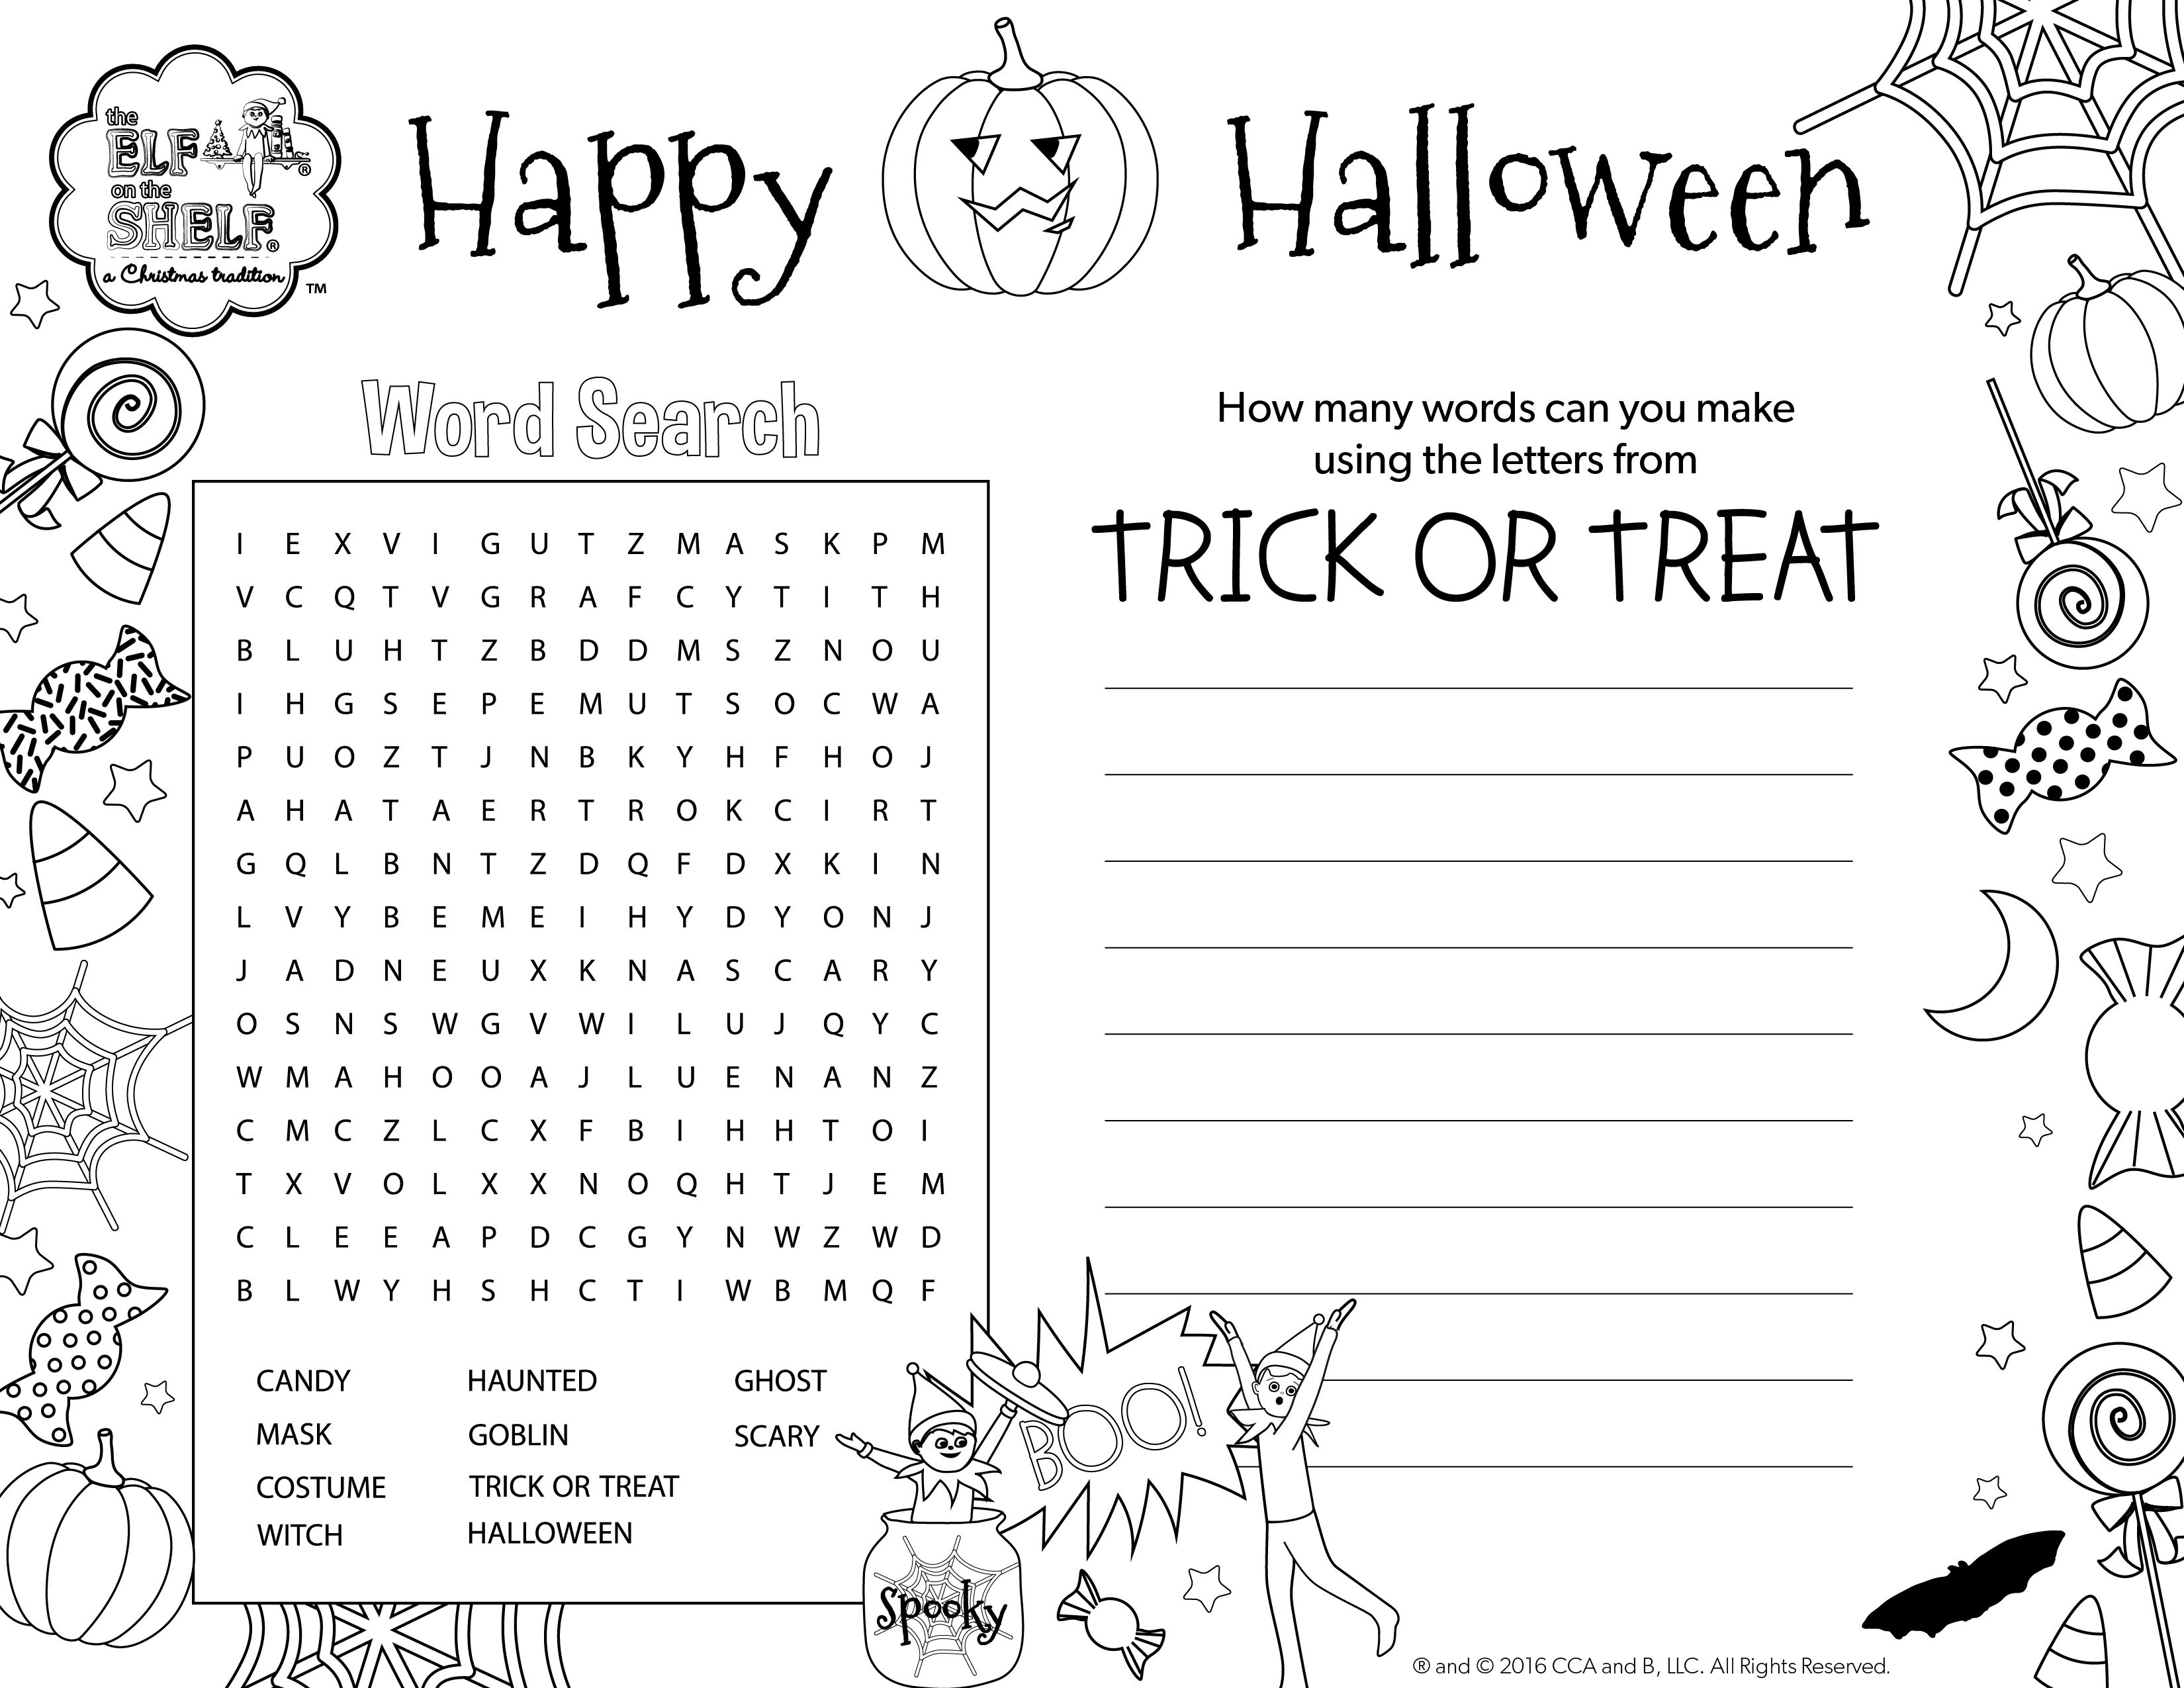 Halloween is just around the corner! Get in the spooky spirit with ...